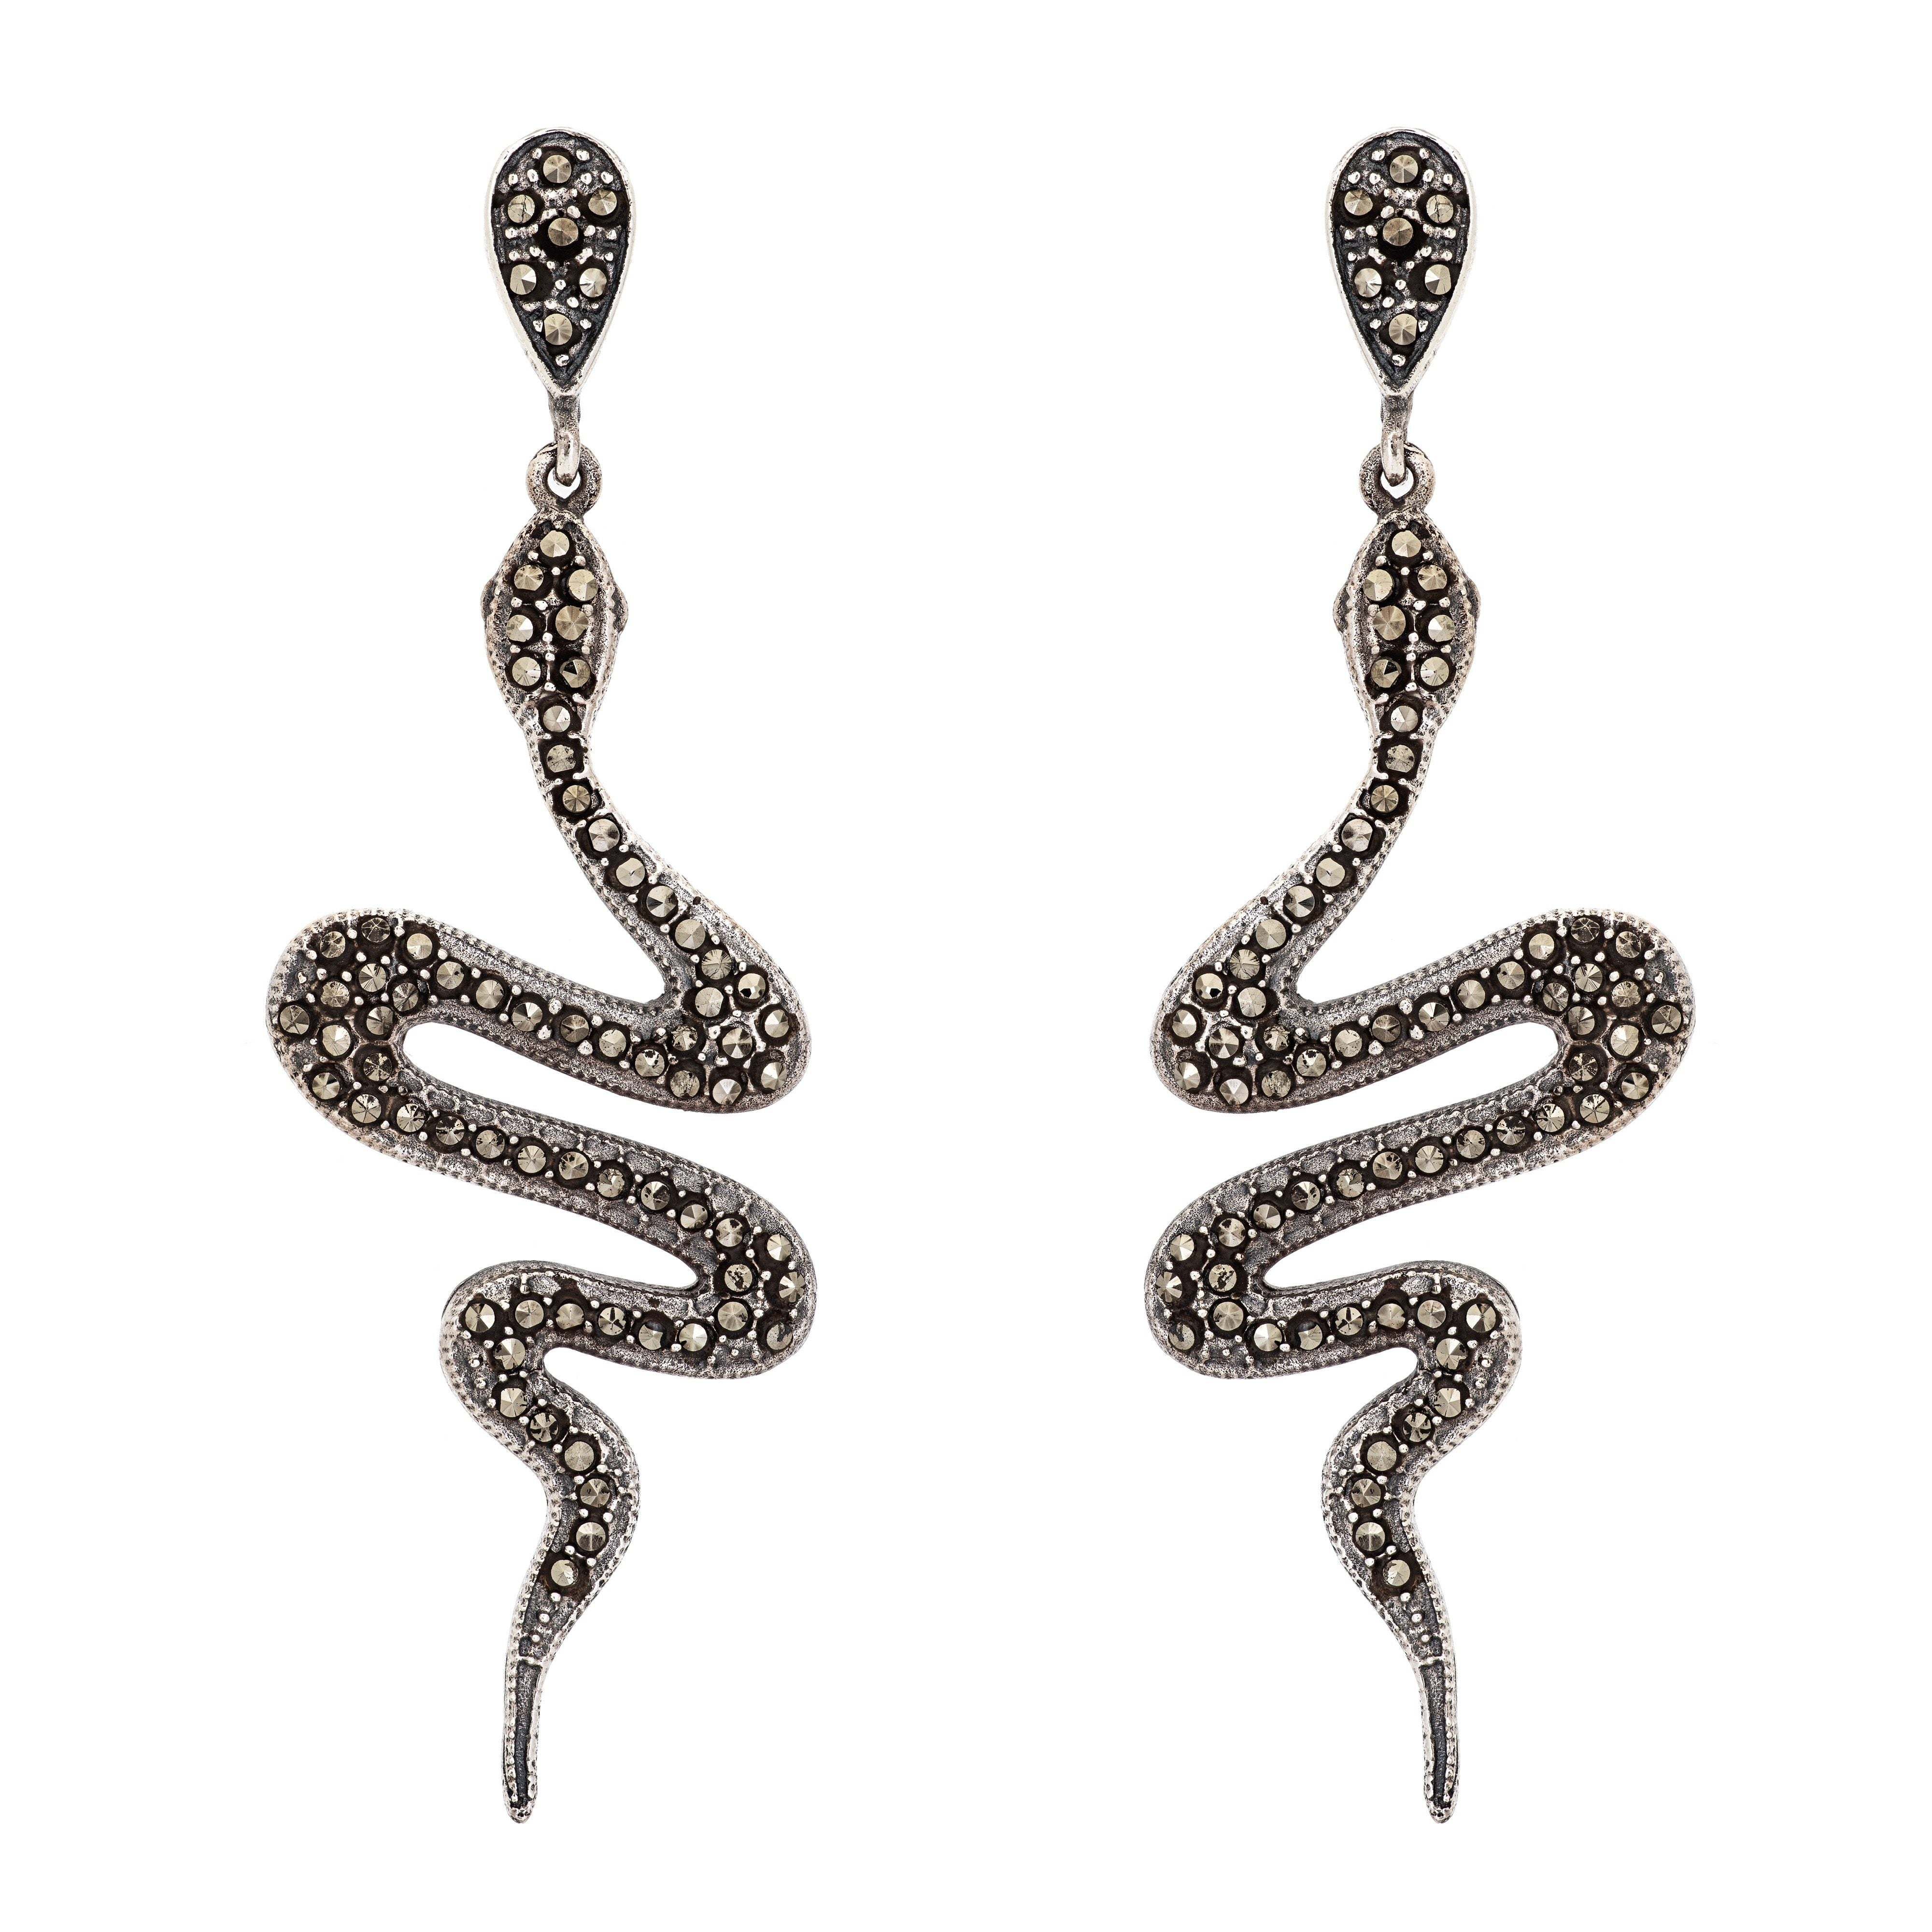 NAGA marcassite long earrings - MadamSiam